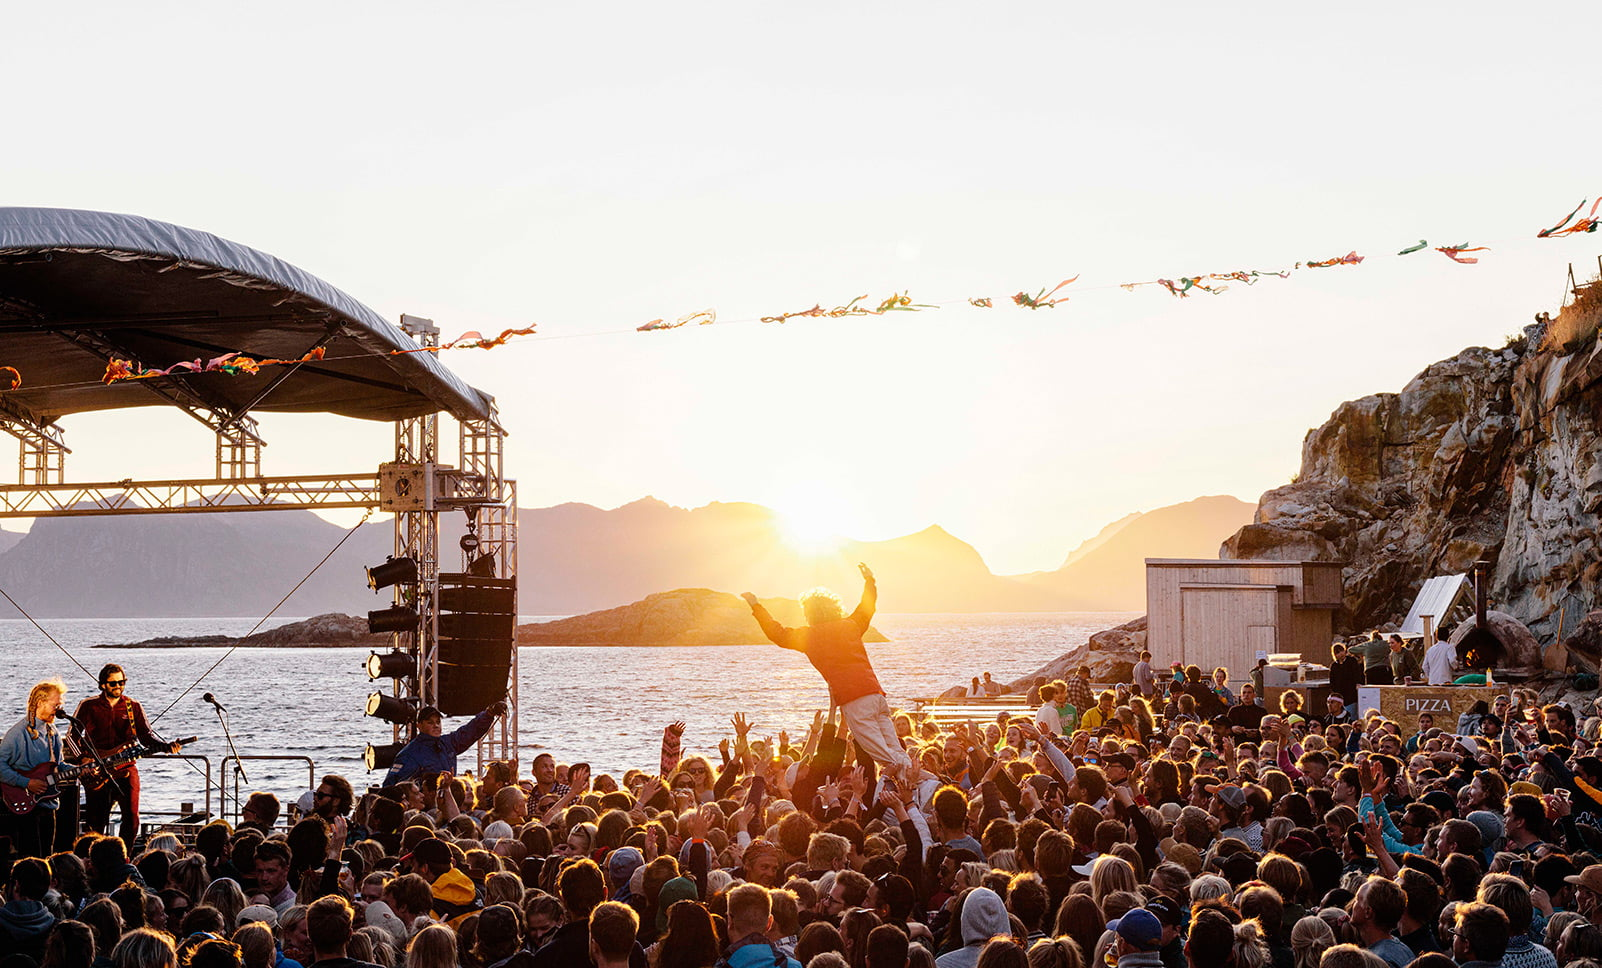 Festival and culture in Bodø Norway